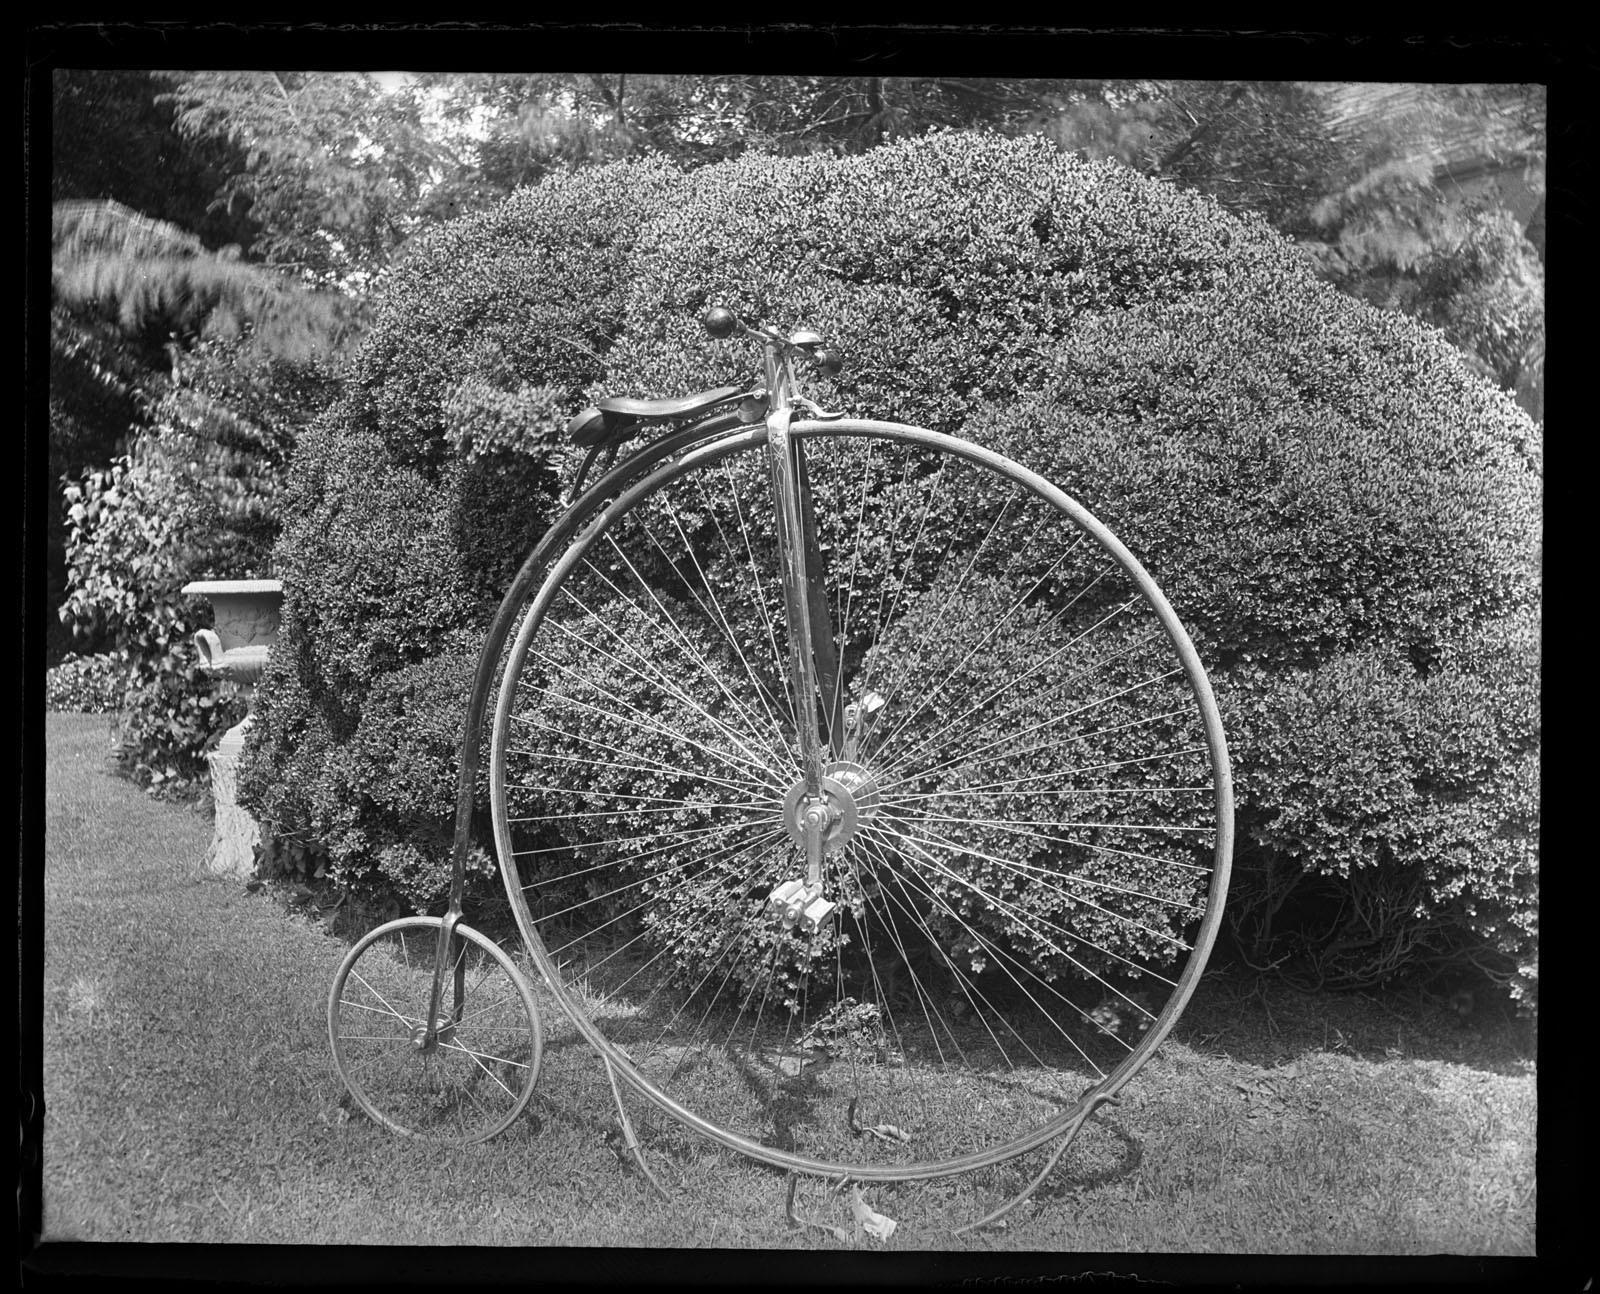 Marriott Canby Morris. My Bicycle, Side View in Front of Box Bush. (Miss Annes), 1887. Glass negative. Marriott C. Morris Collection